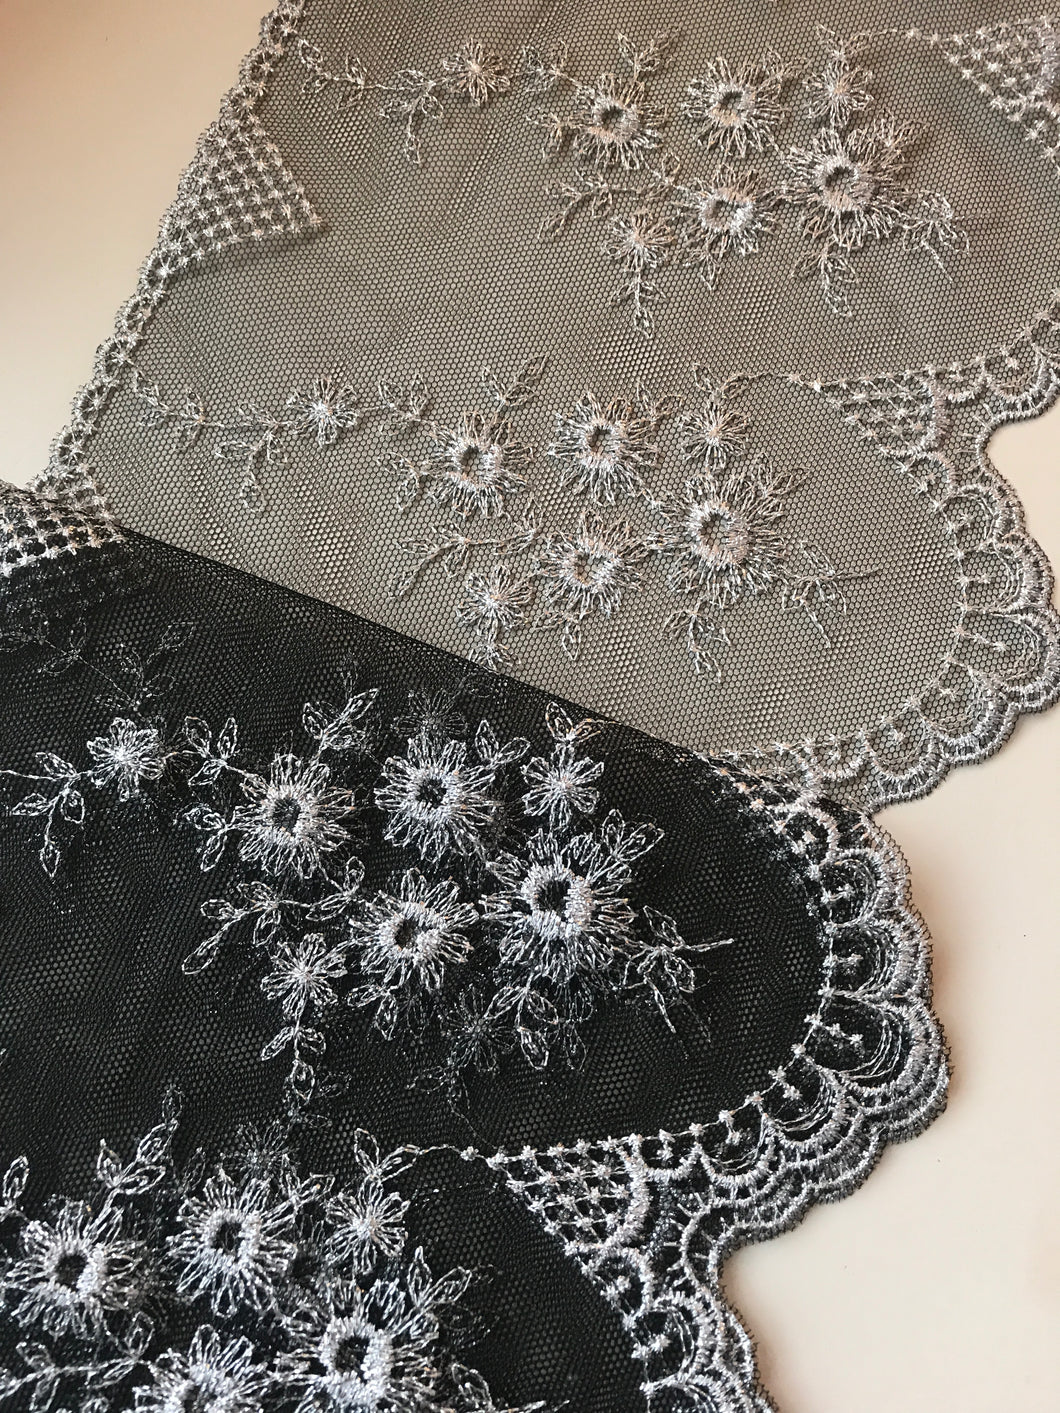 Stunning Delicate Black/Silver Embroidered French Tulle 20 cm/8